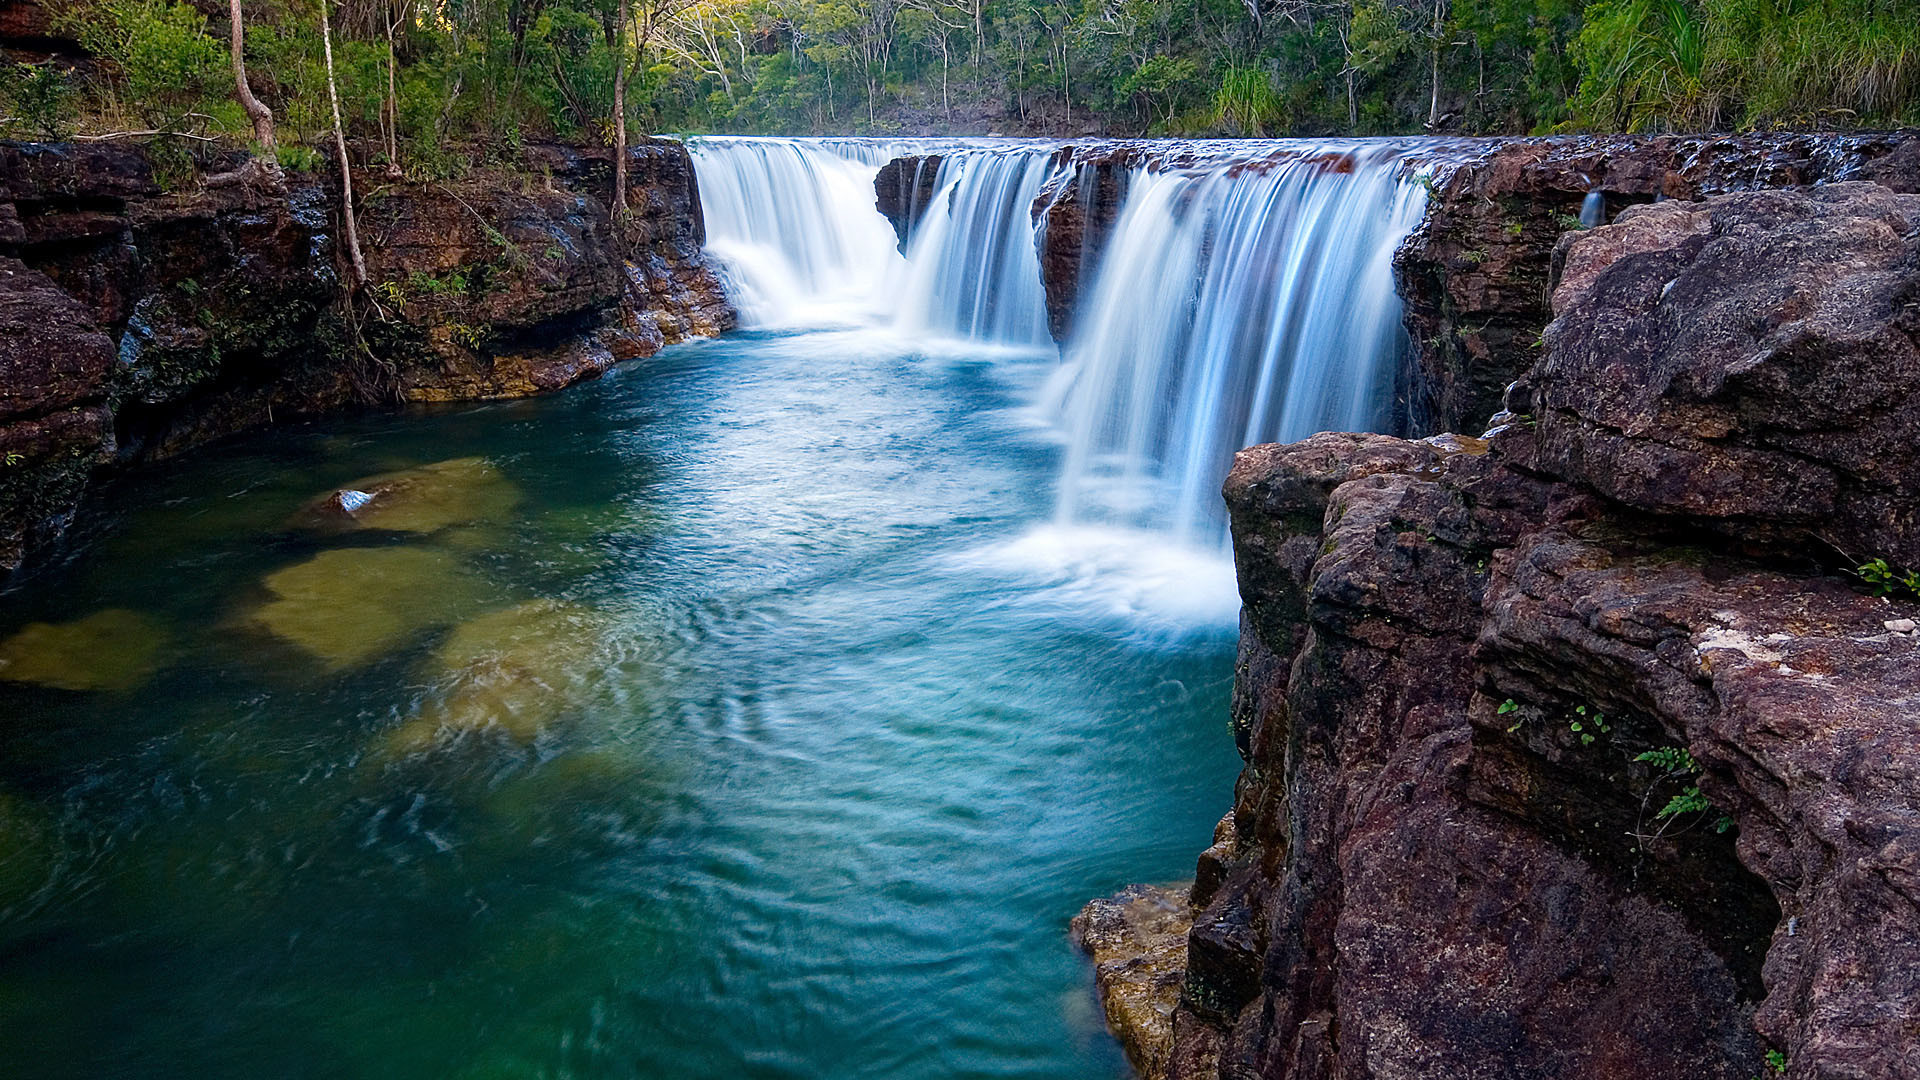 Download this Waterfall Wallpaper picture